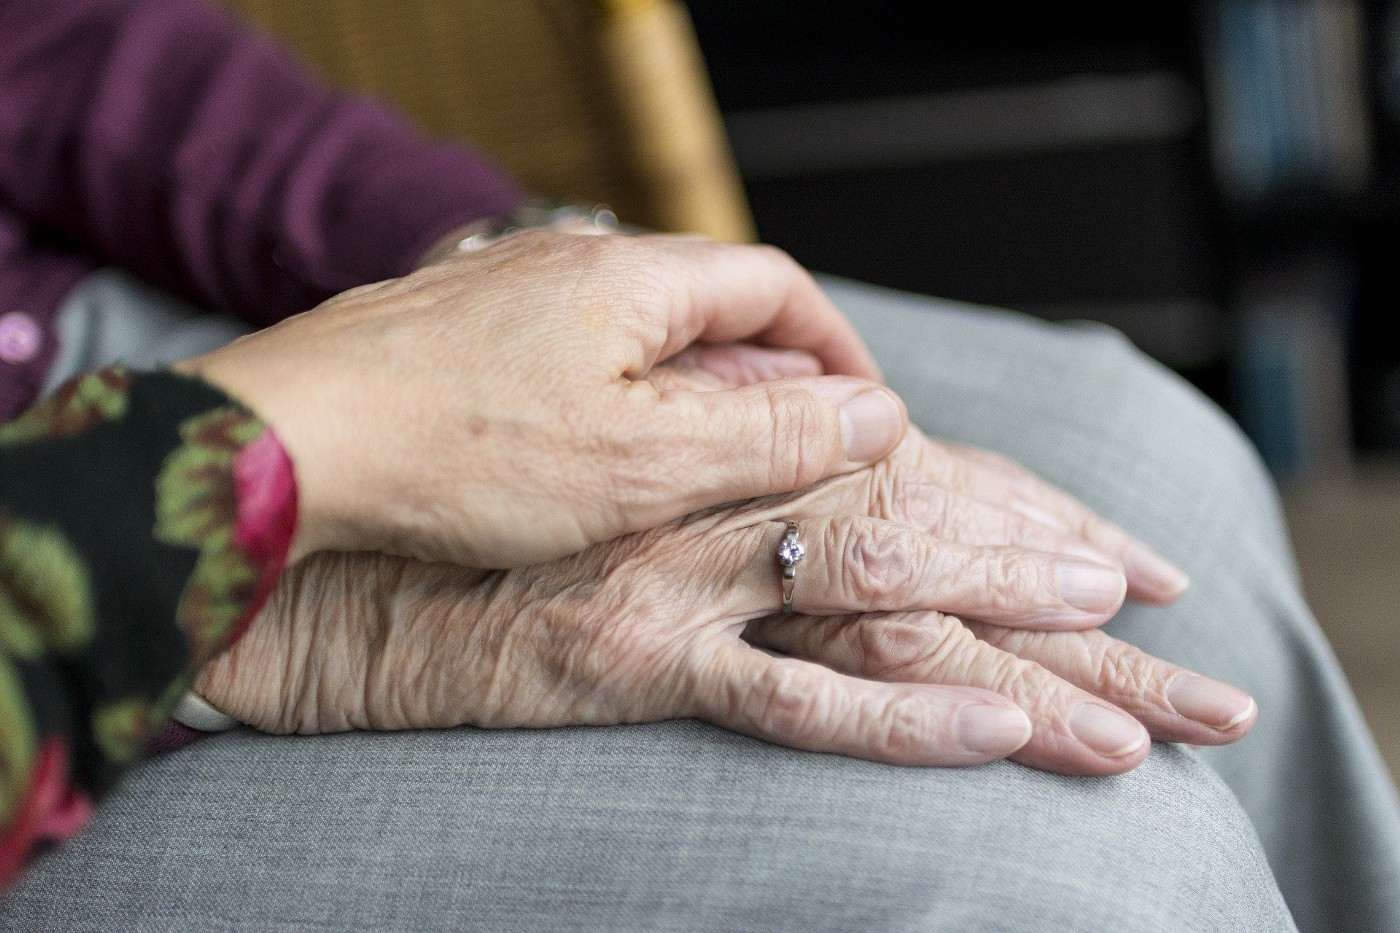 A woman's hand covers the wrinkled hand of her elderly mother.